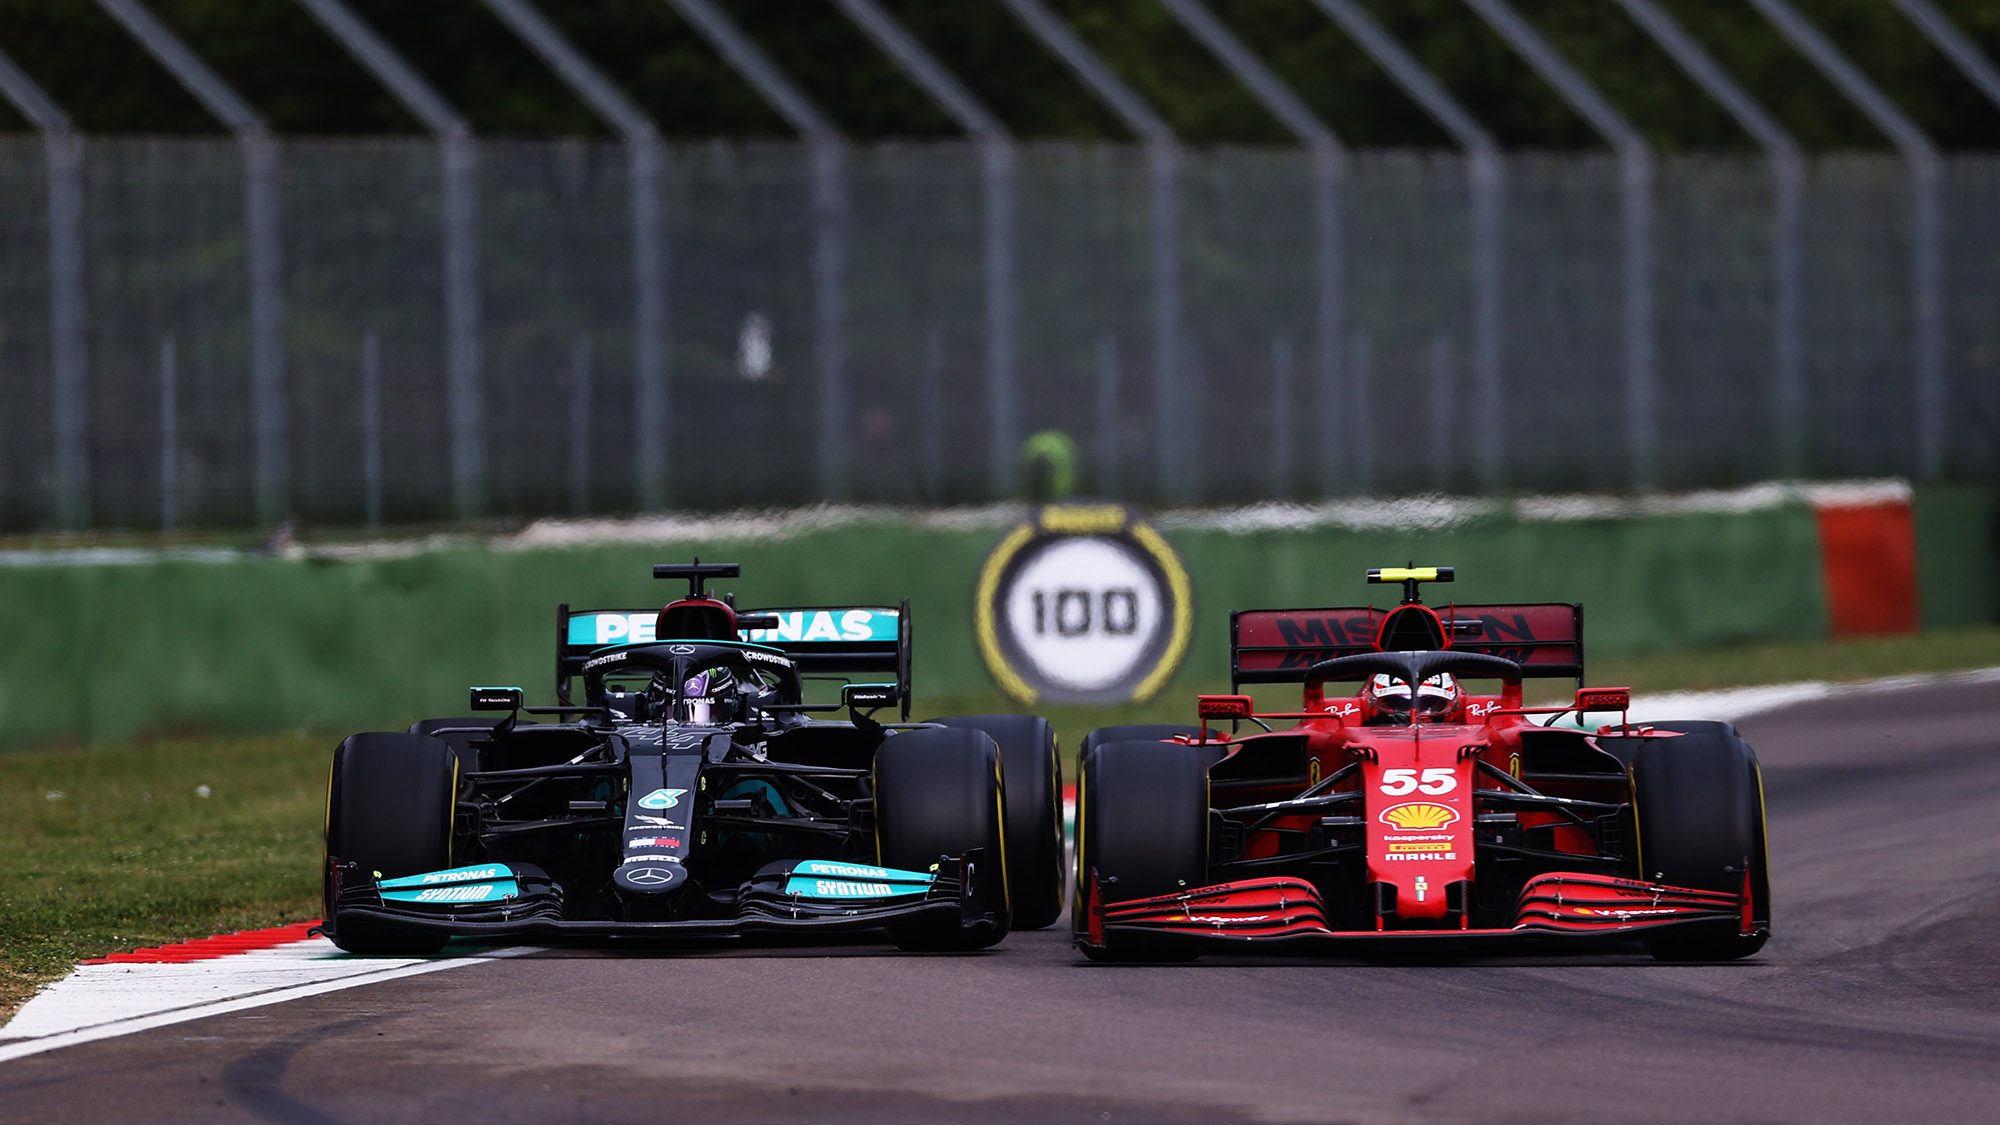 Lewis Hamilton battles with Carlos Sainz in the 2021 Emilia Romagna Grand Prix